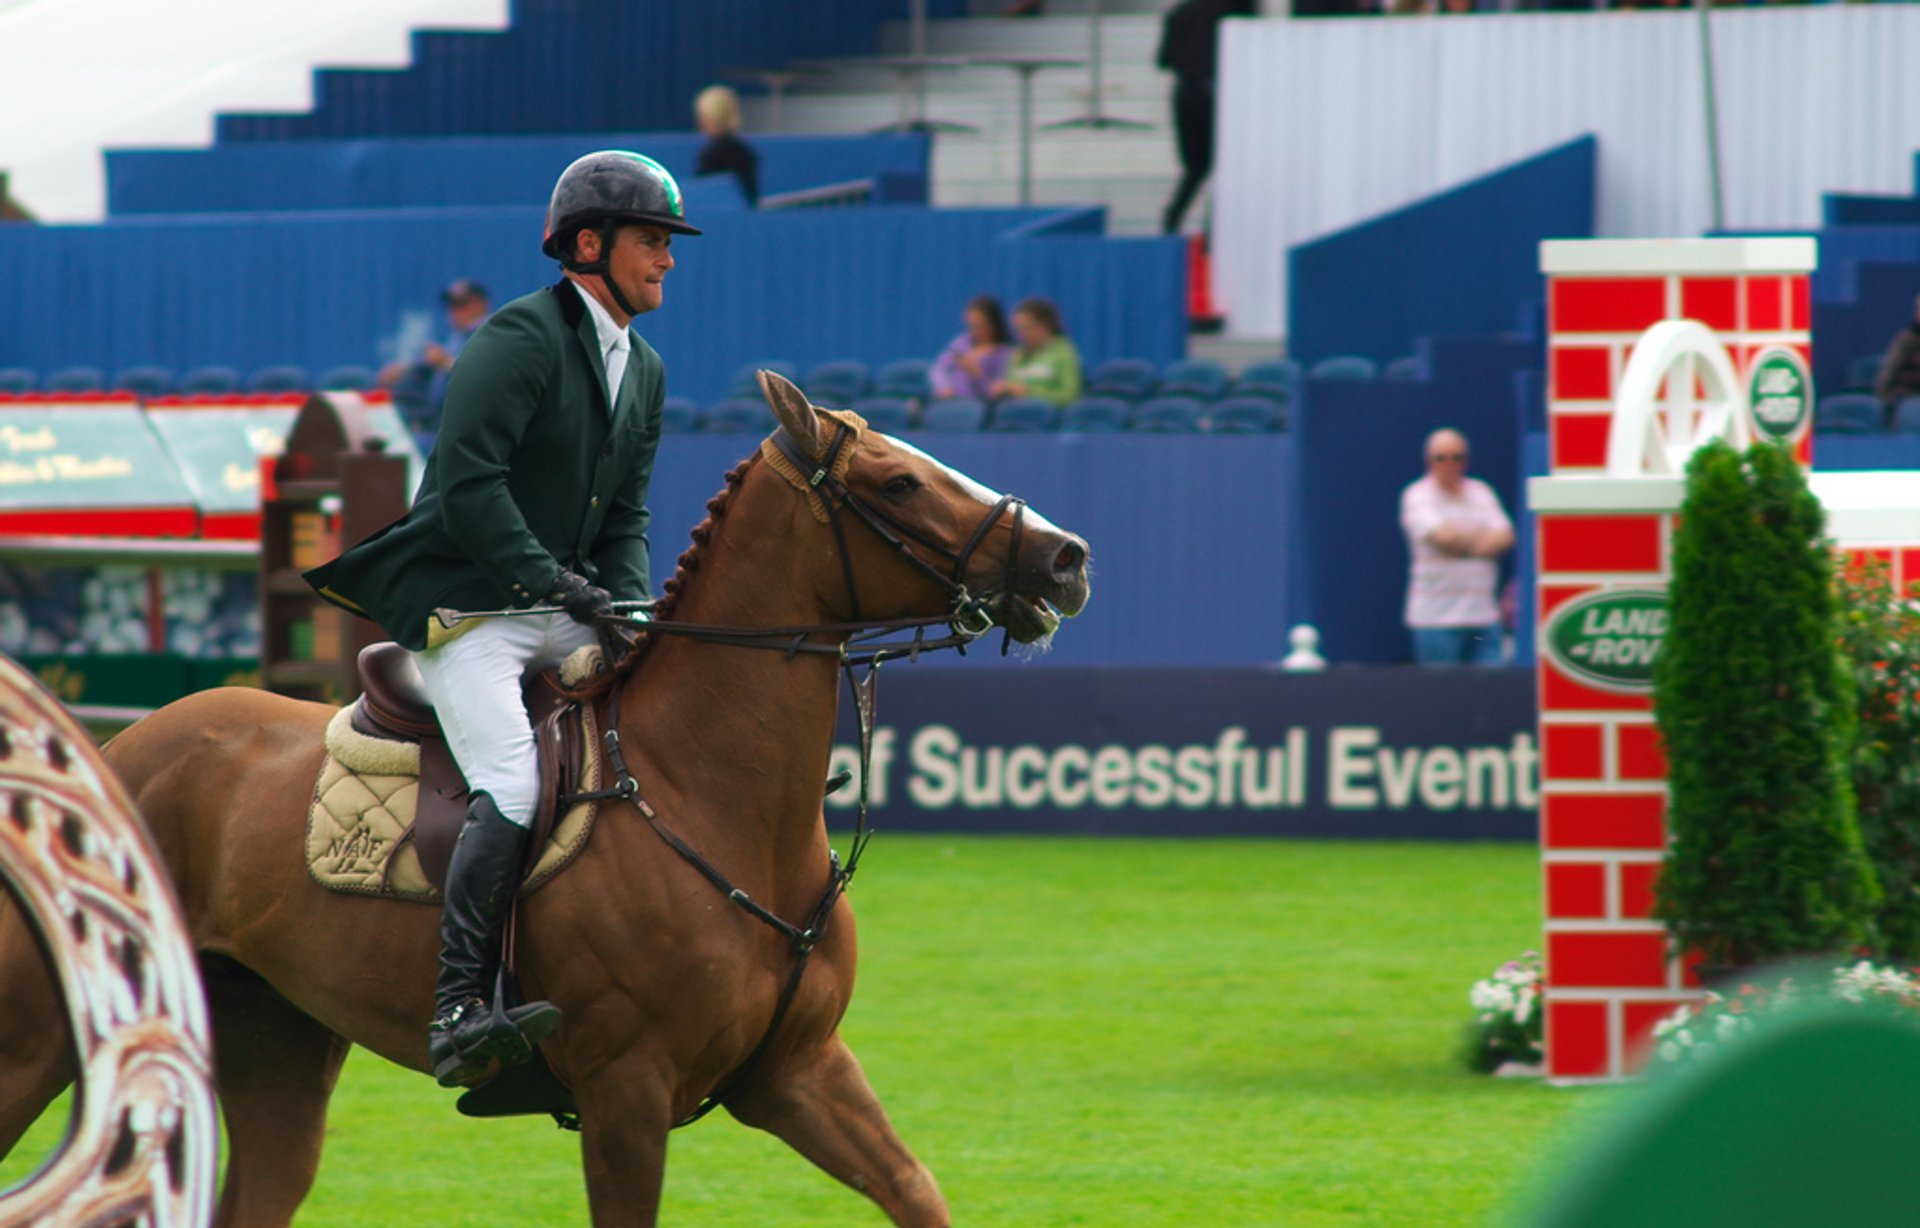 Dublin Horse Show in Dublin - Best Season 2019